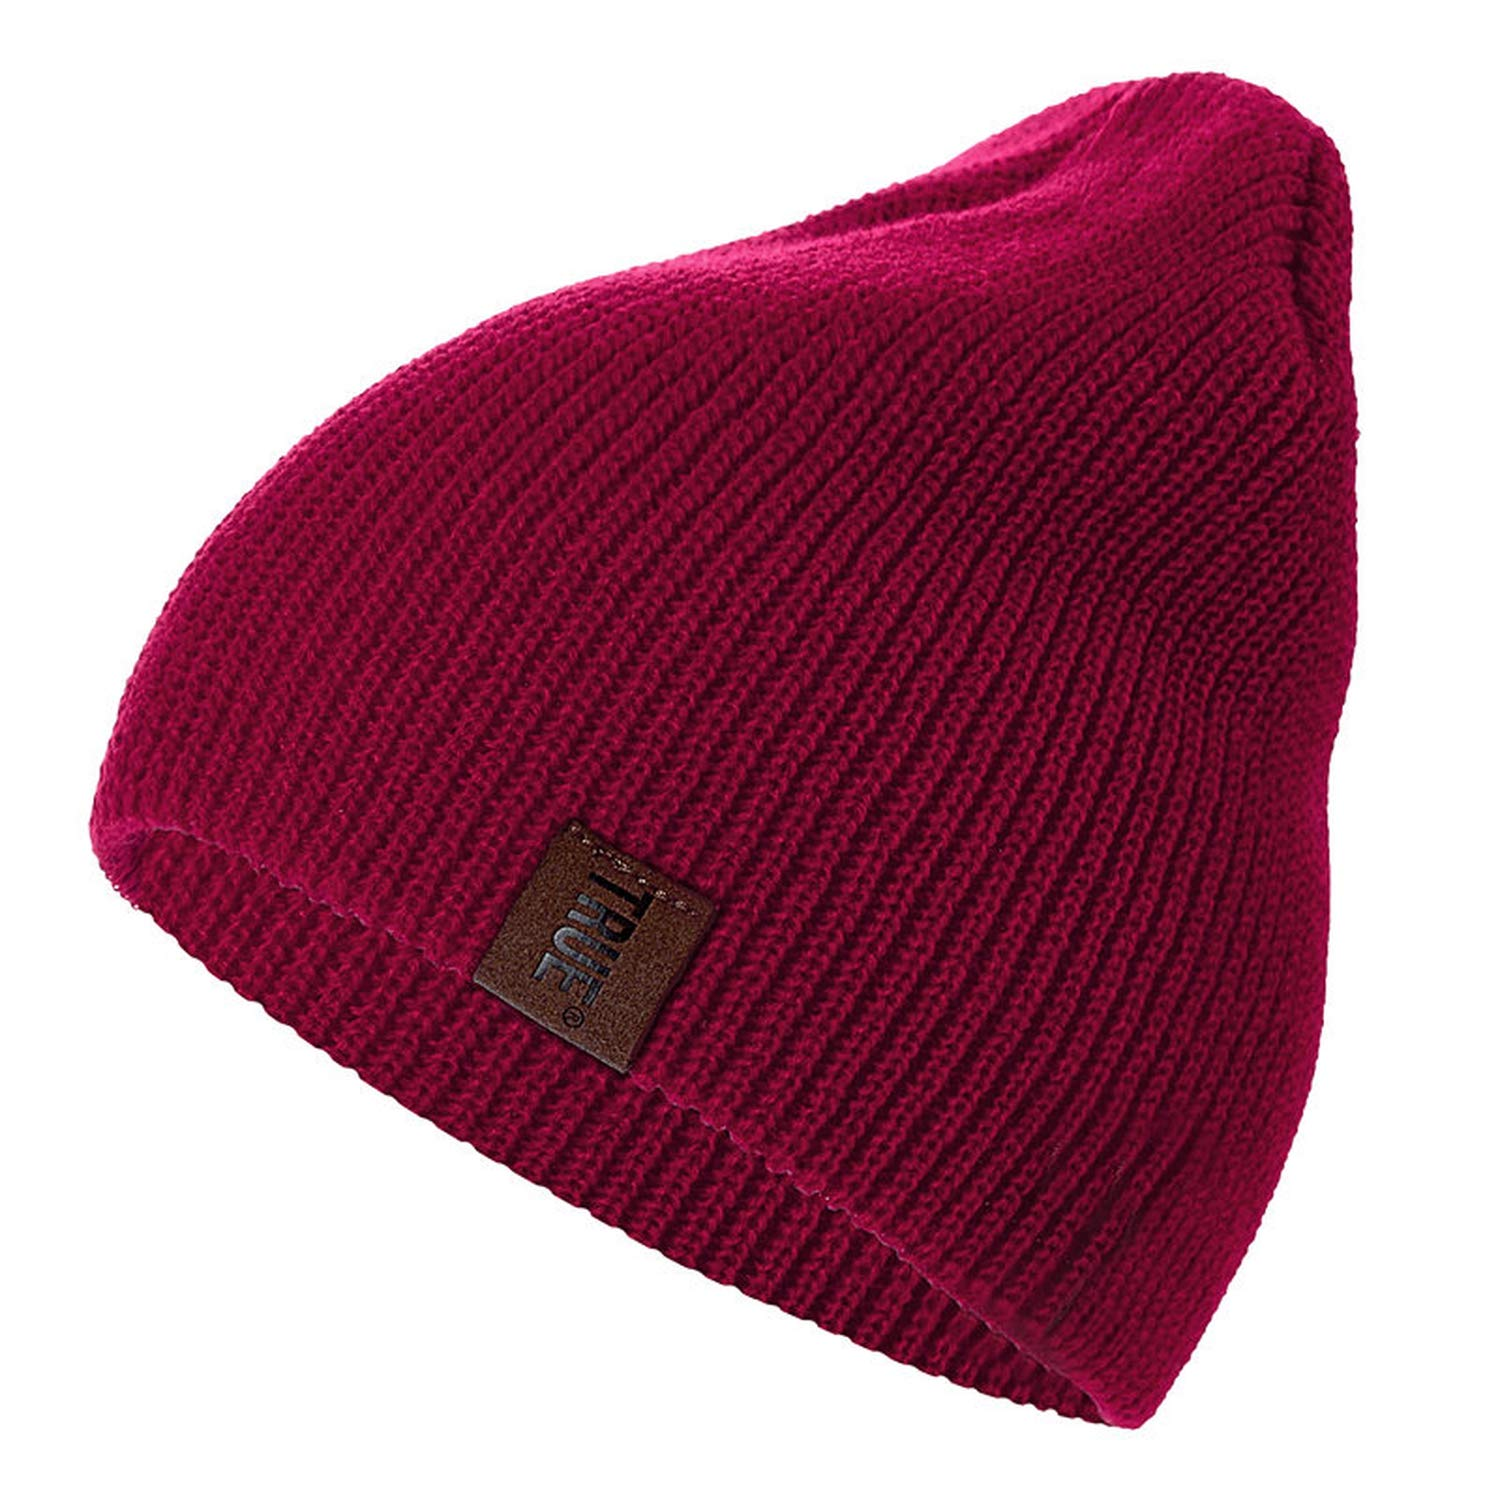 MingDe Sports 1 Pcs Hat PU Letter Casual Beanies for Men Women Warm Knitted Winter Hat Fashion Solid Beanie Hat Unisex Cap